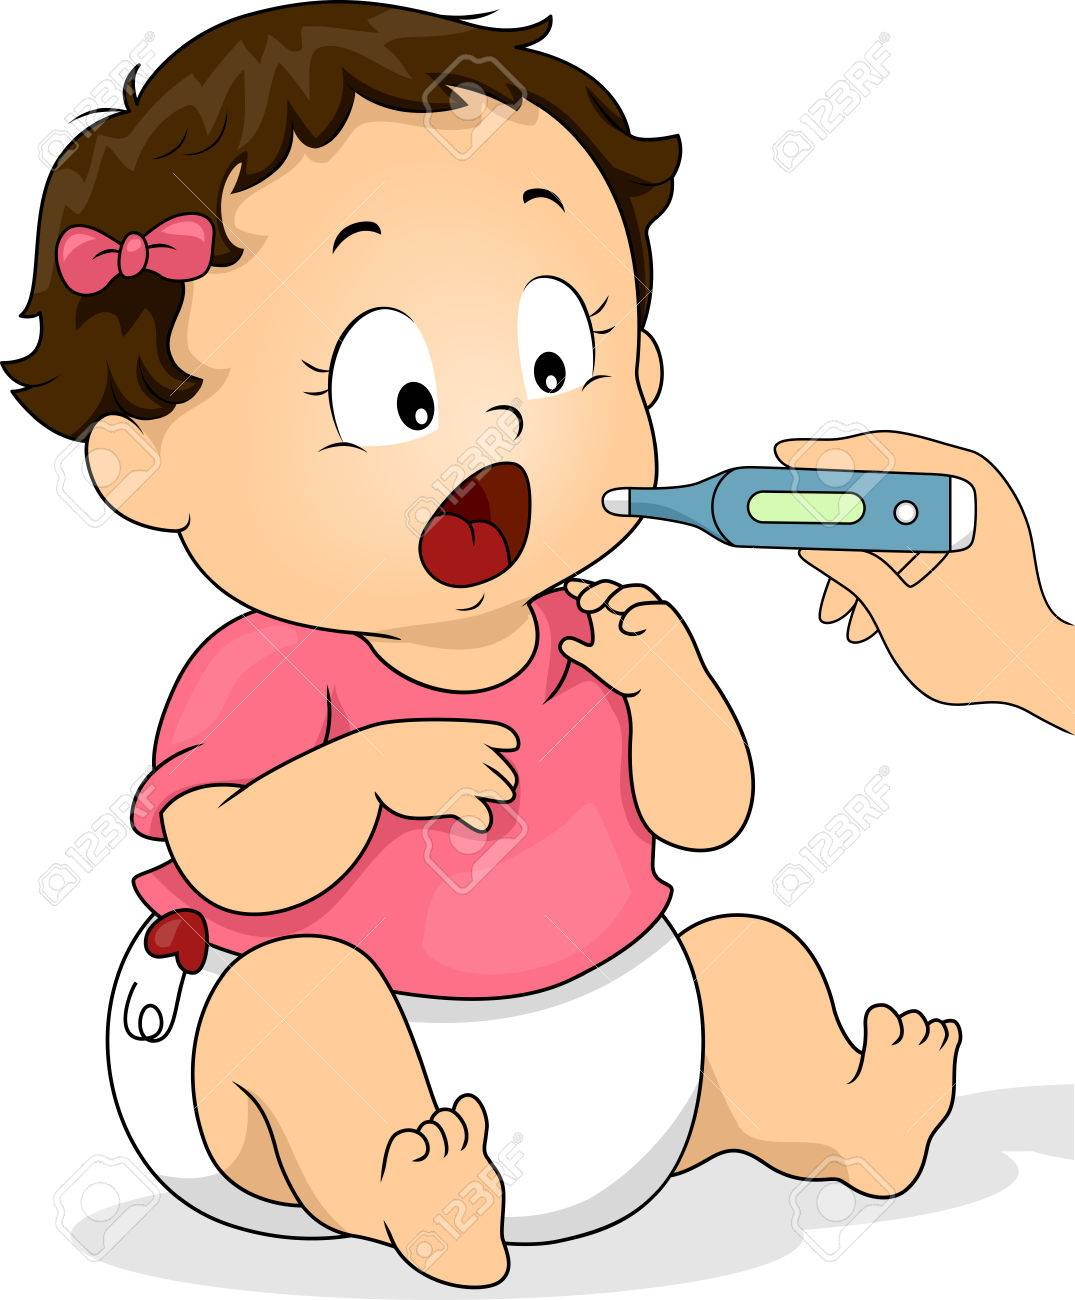 Baby Mouth Clipart.